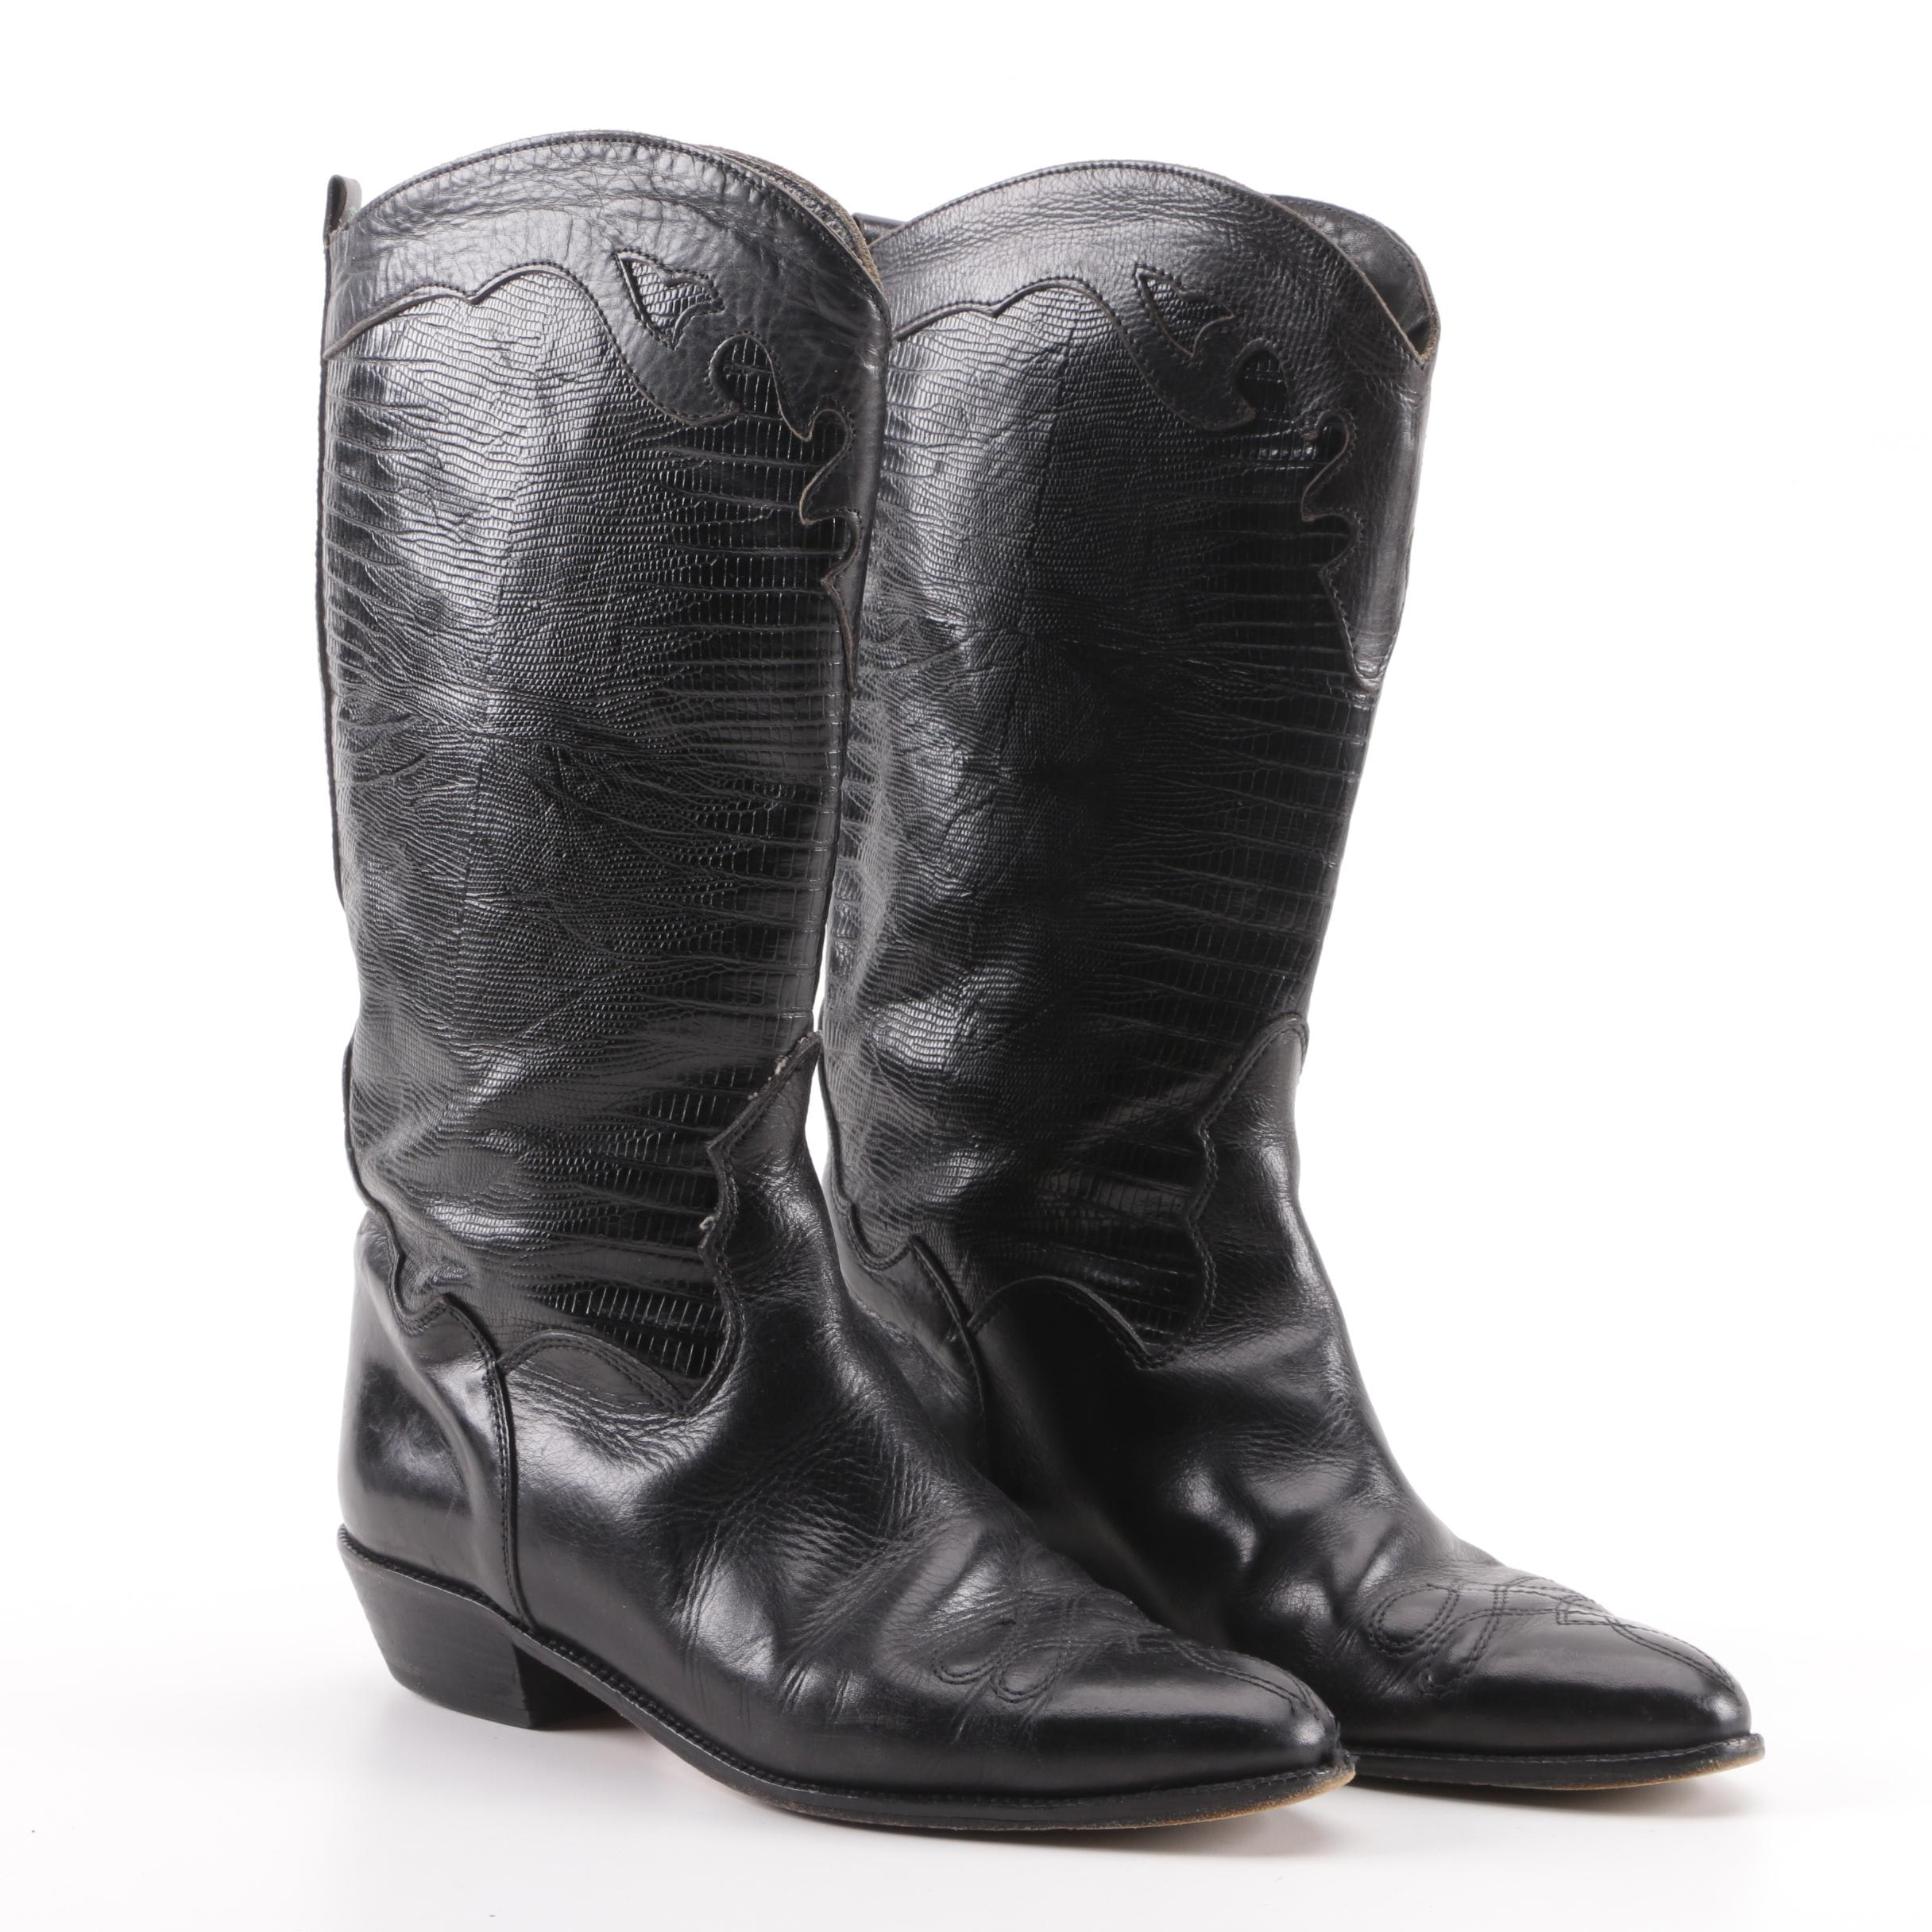 Joan & David Black Embossed Leather Boots